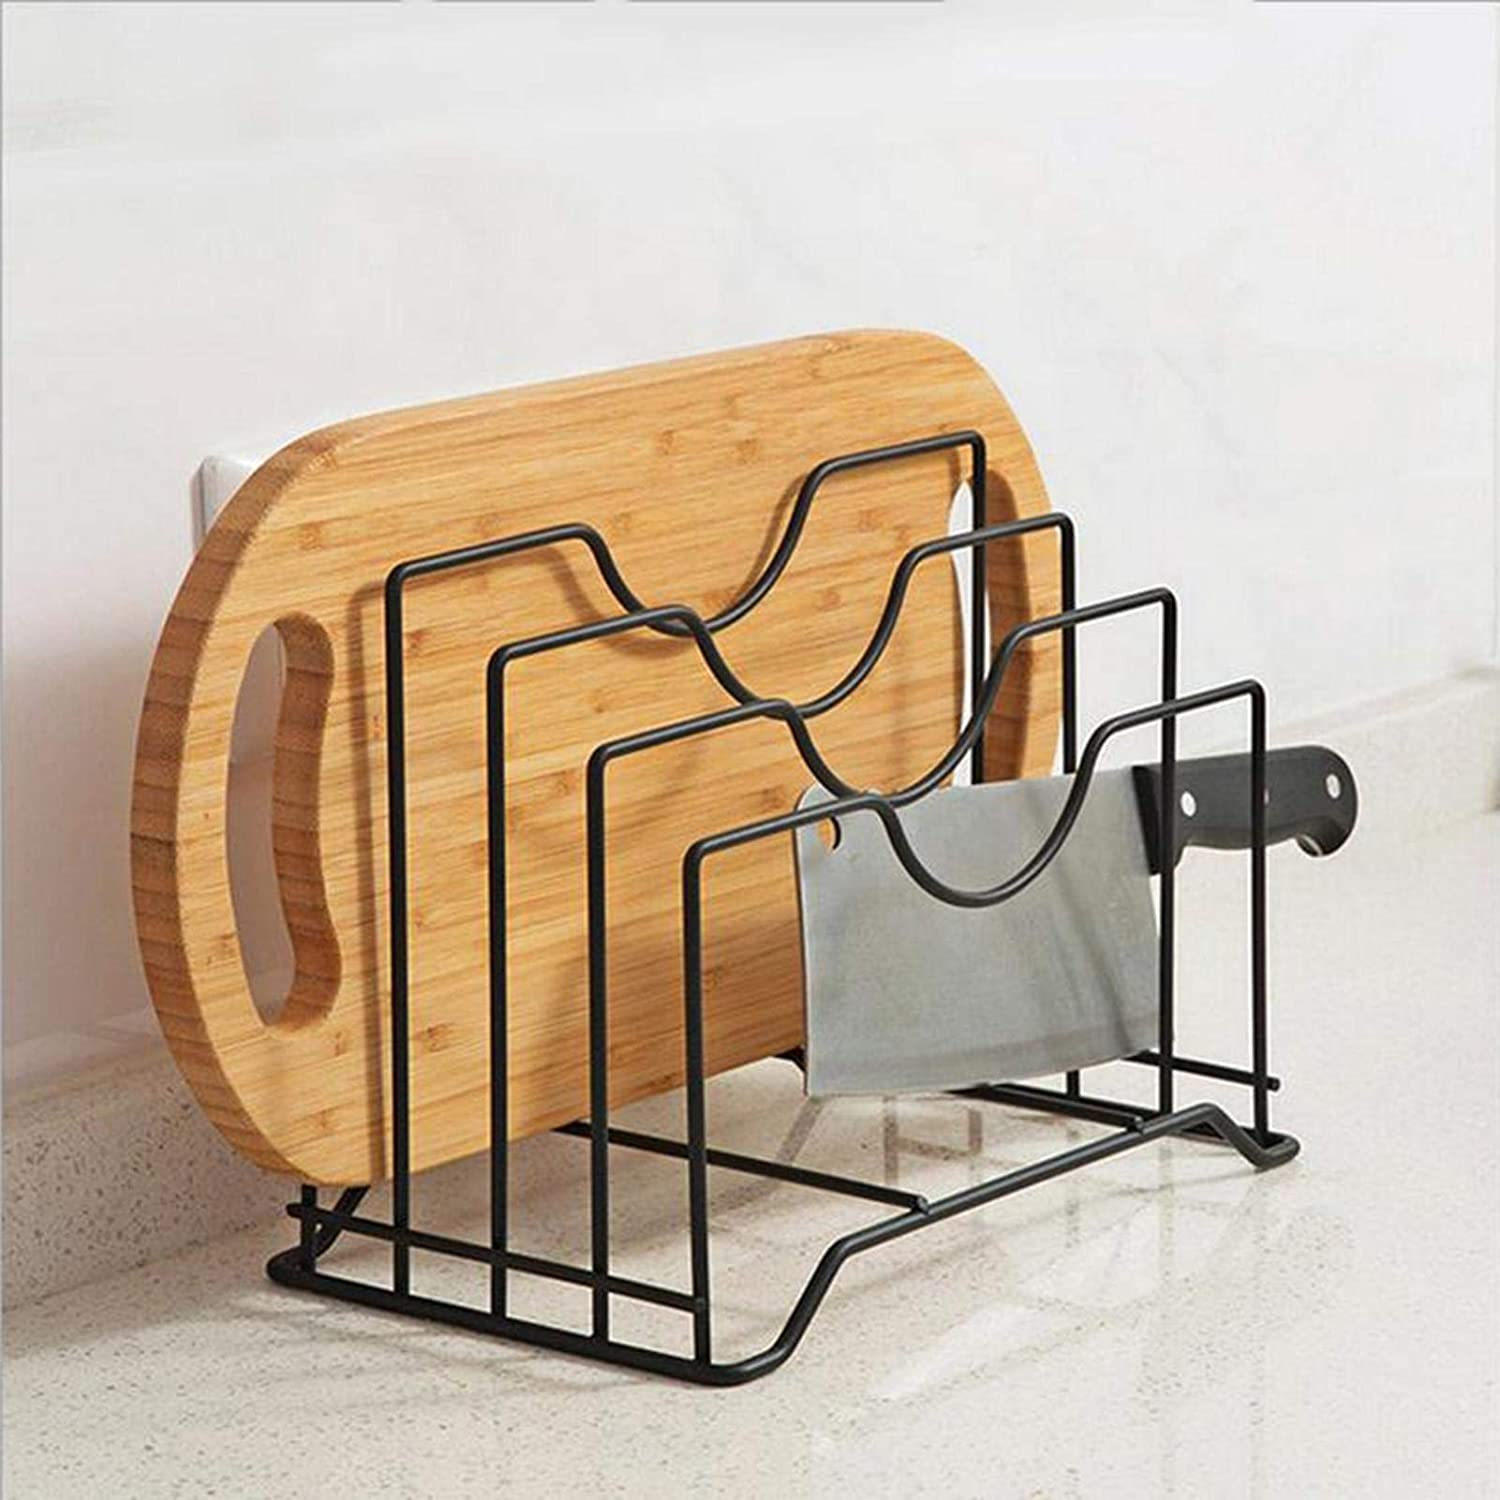 Our shop most popular Coyan Kitchen Storage Racks And Max 85% OFF Multi-function Shelves Metal Ir